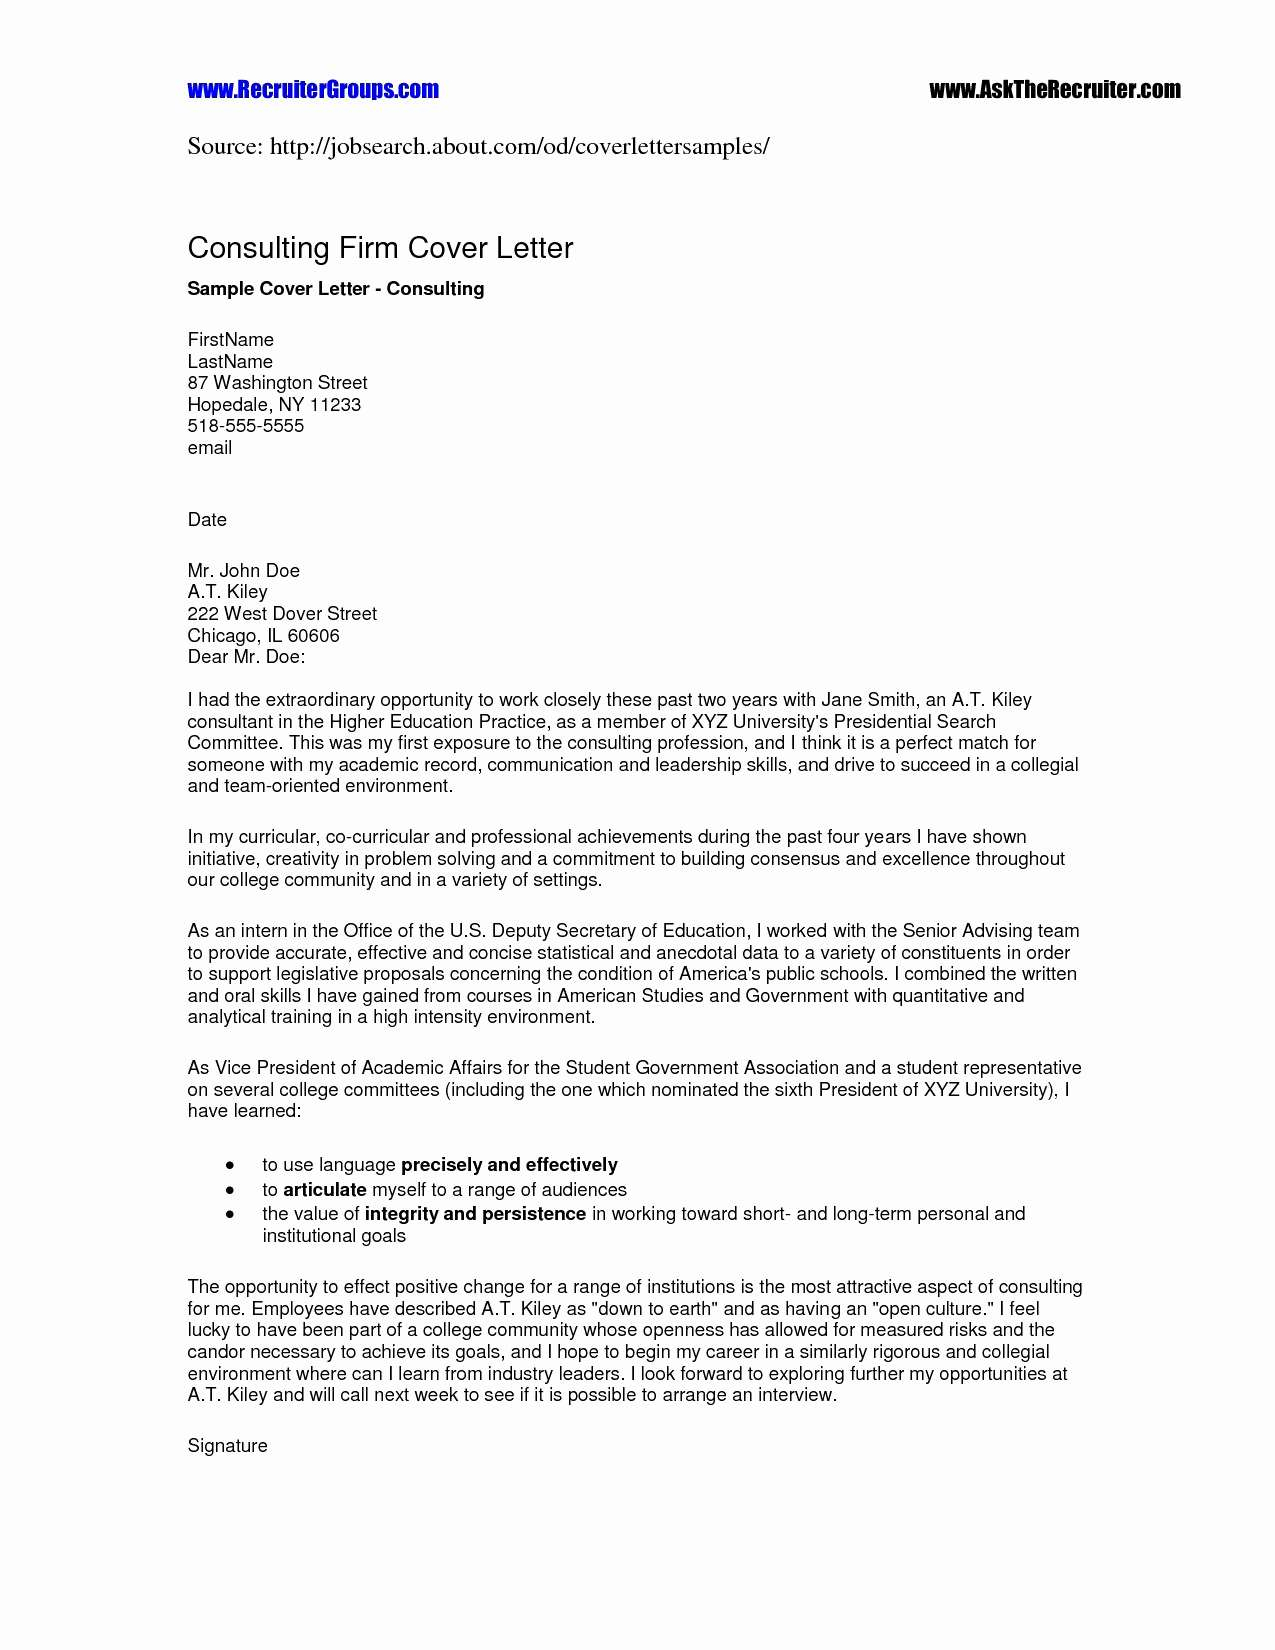 Cover Letter Template 2017 - Resume Template 2017 Free Elegant Cover Letter Vs Resume Sample